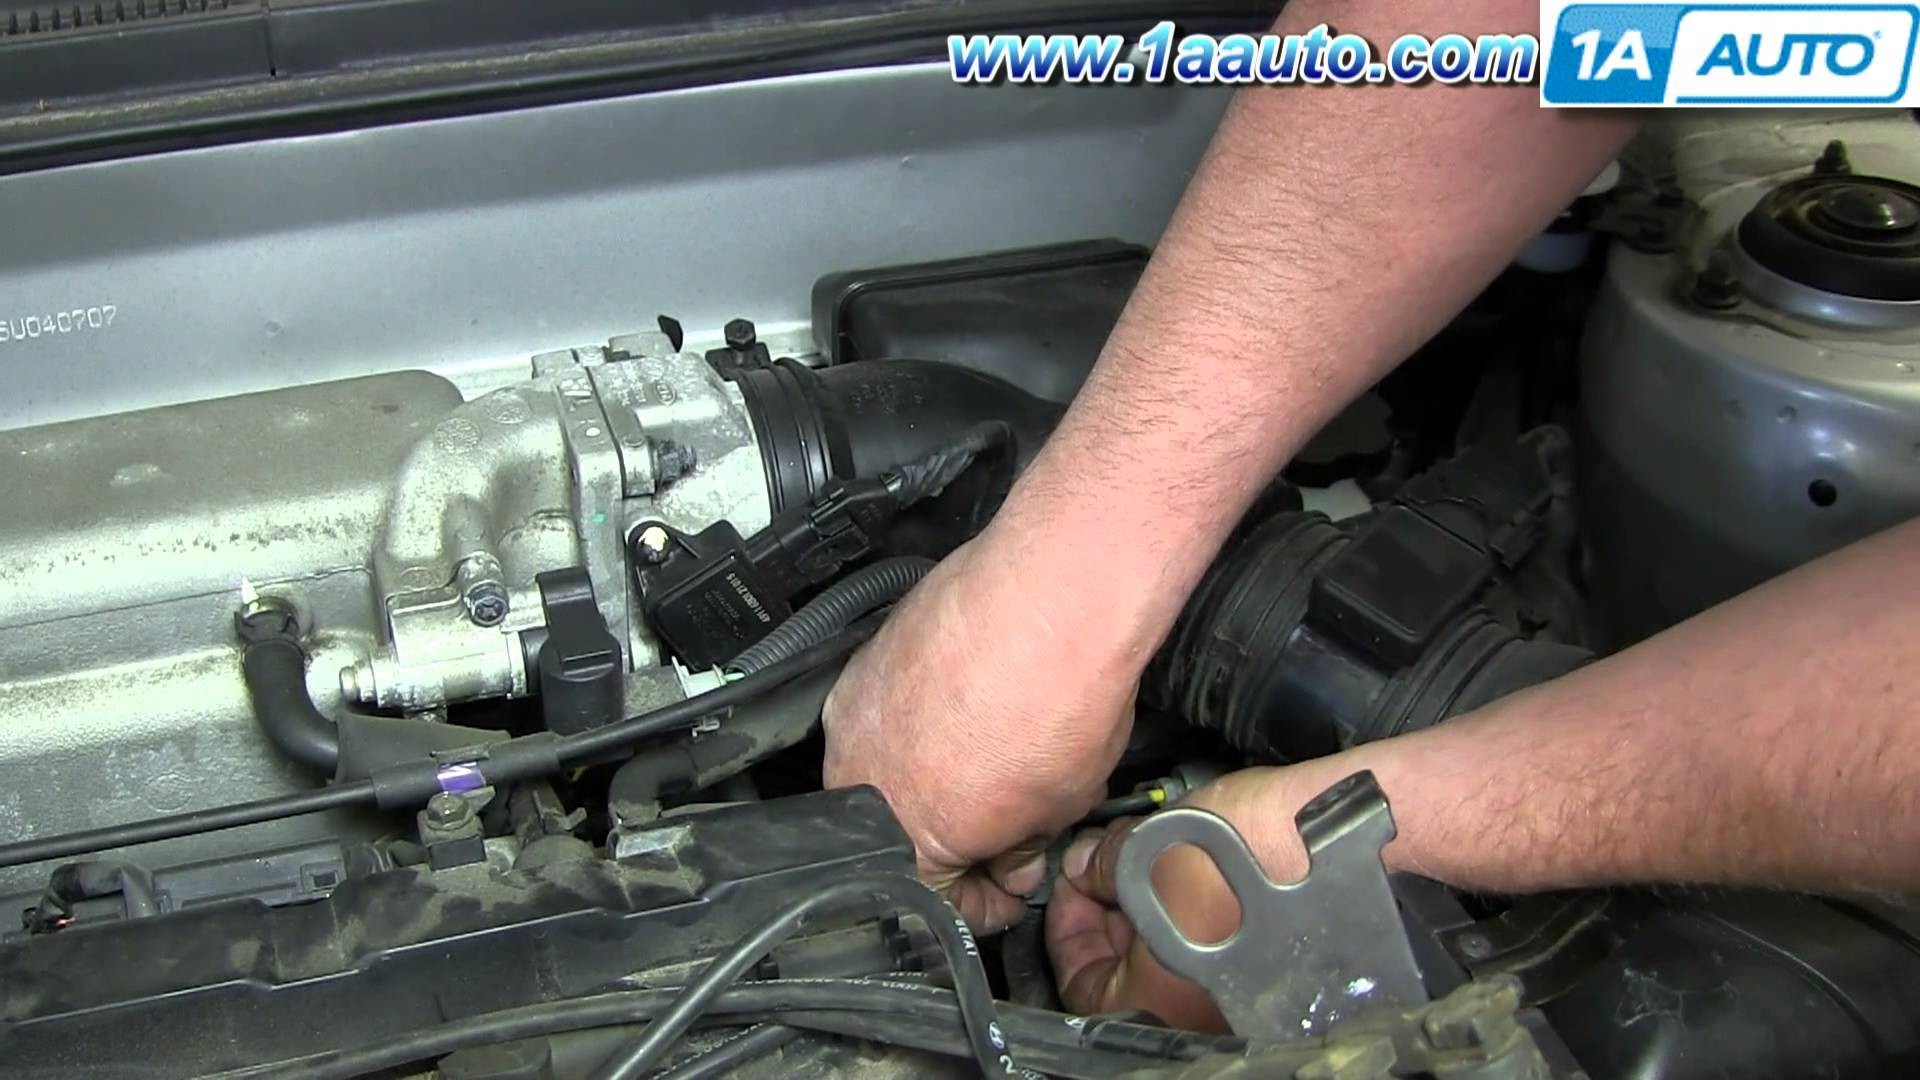 2002 Hyundai Sonata Engine Diagram Wiring Elantra How To Install Replace Ignition Coil 2003 06